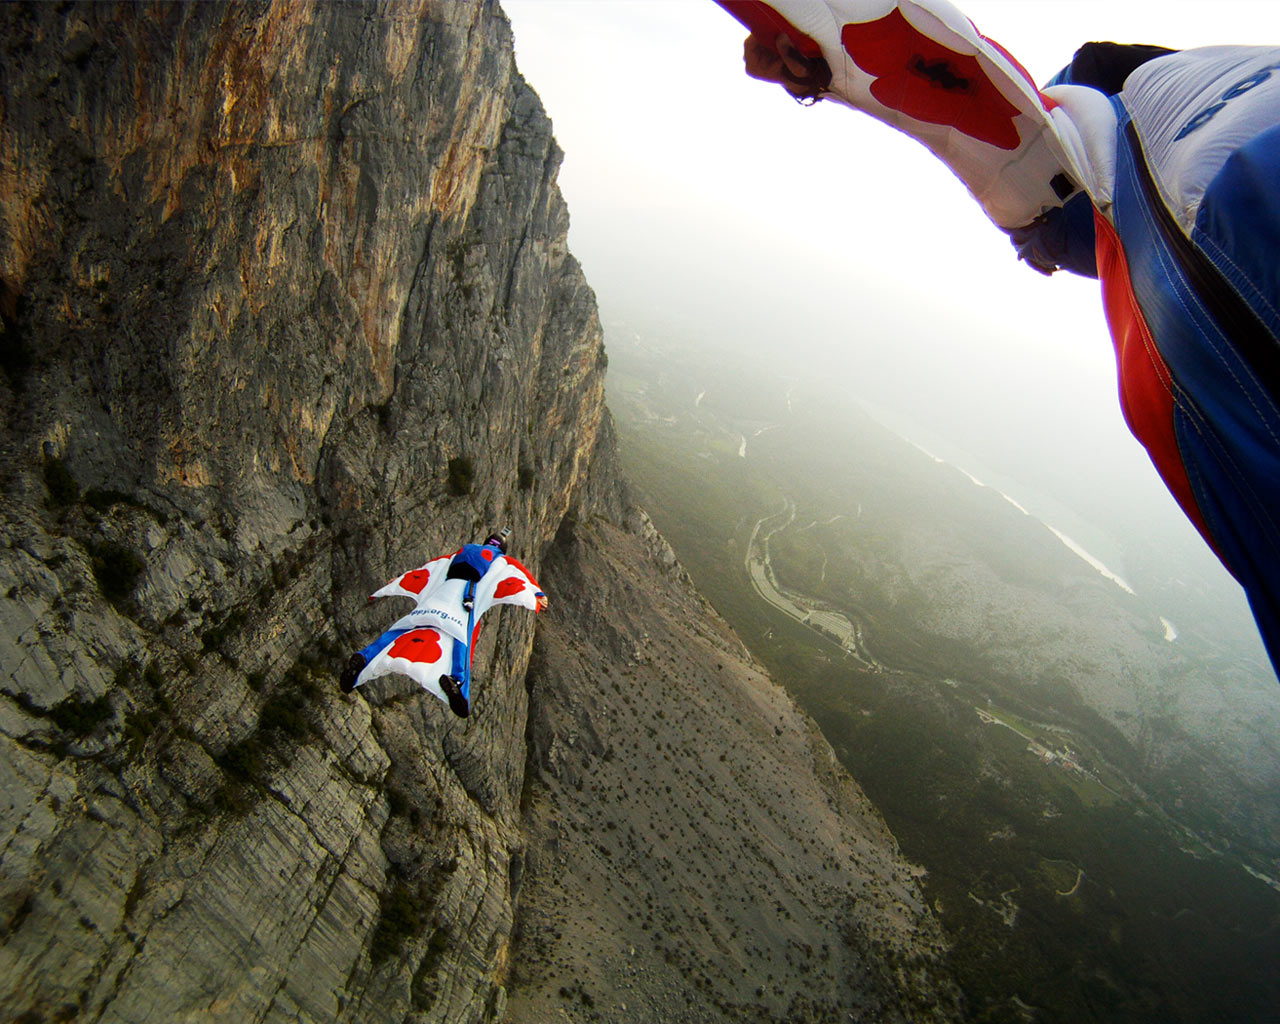 Base Jumping Hd Wallpaper